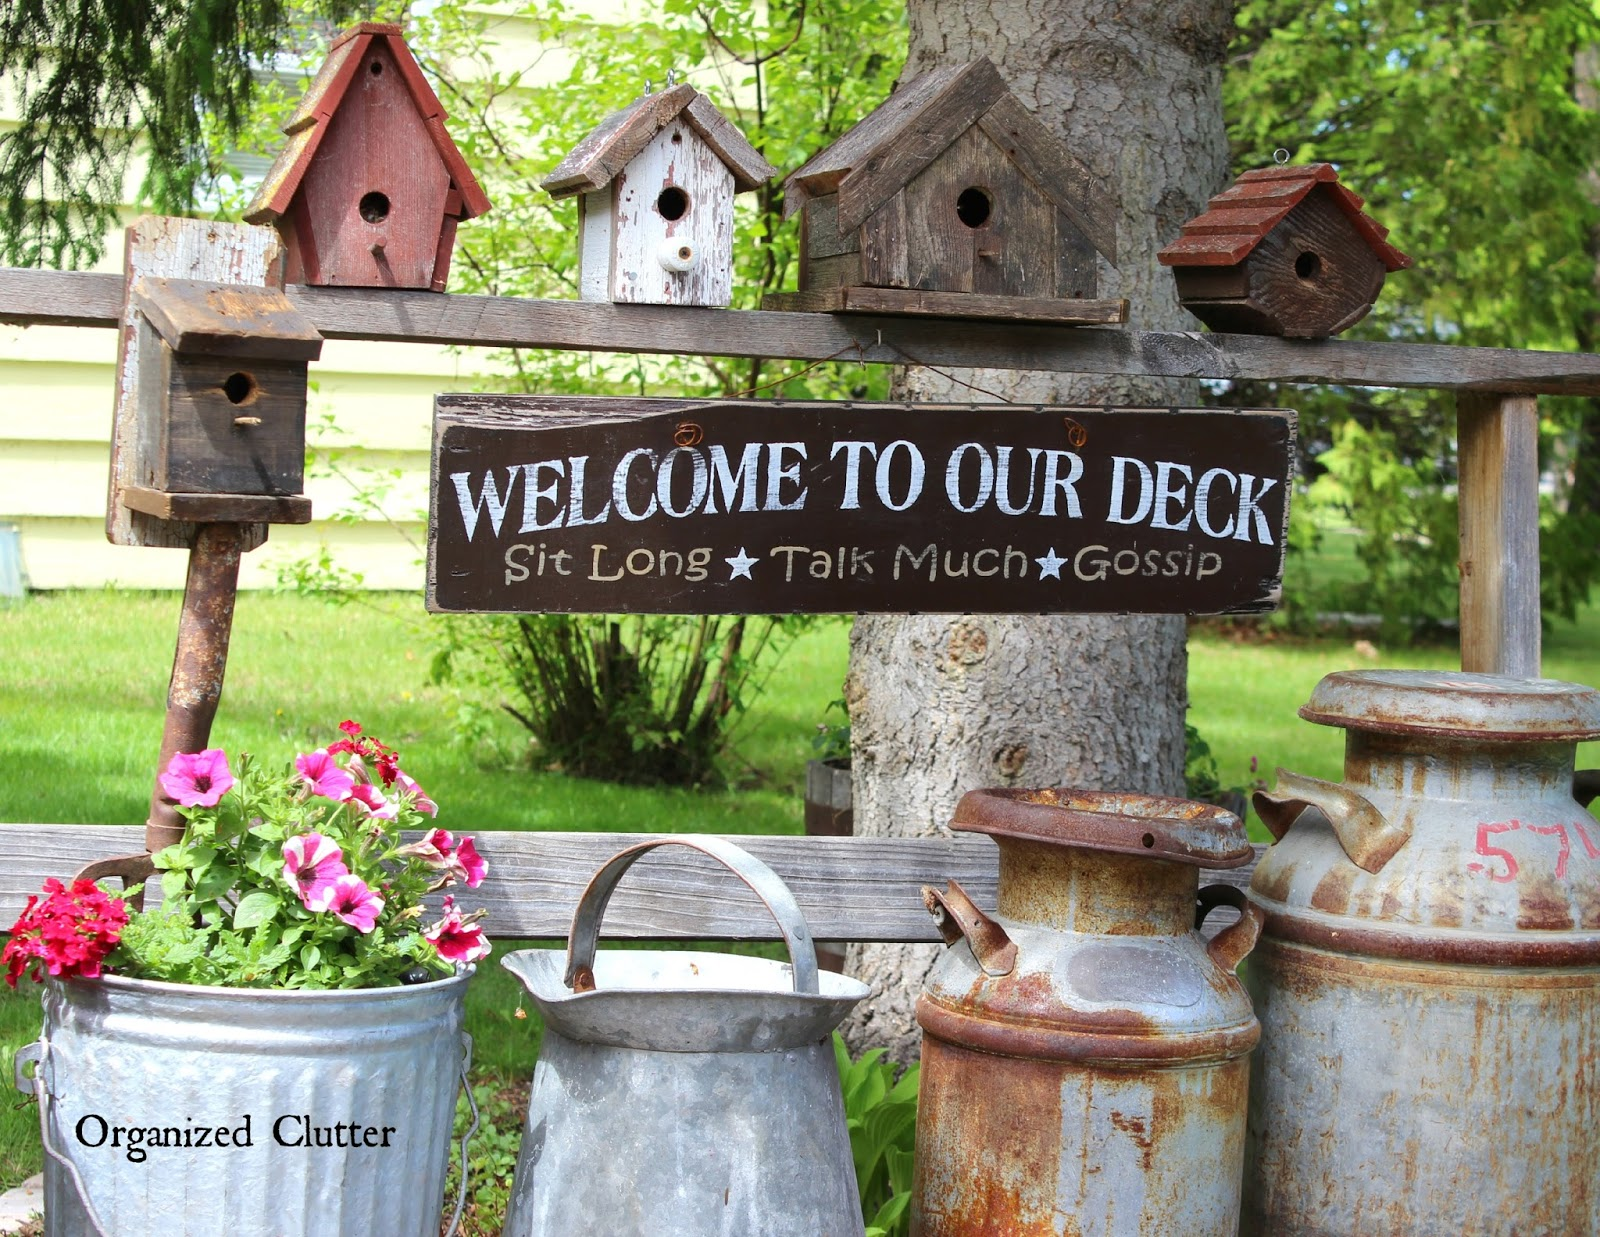 Decorating the Deck with Rustic Birdhouses | Organized Clutter